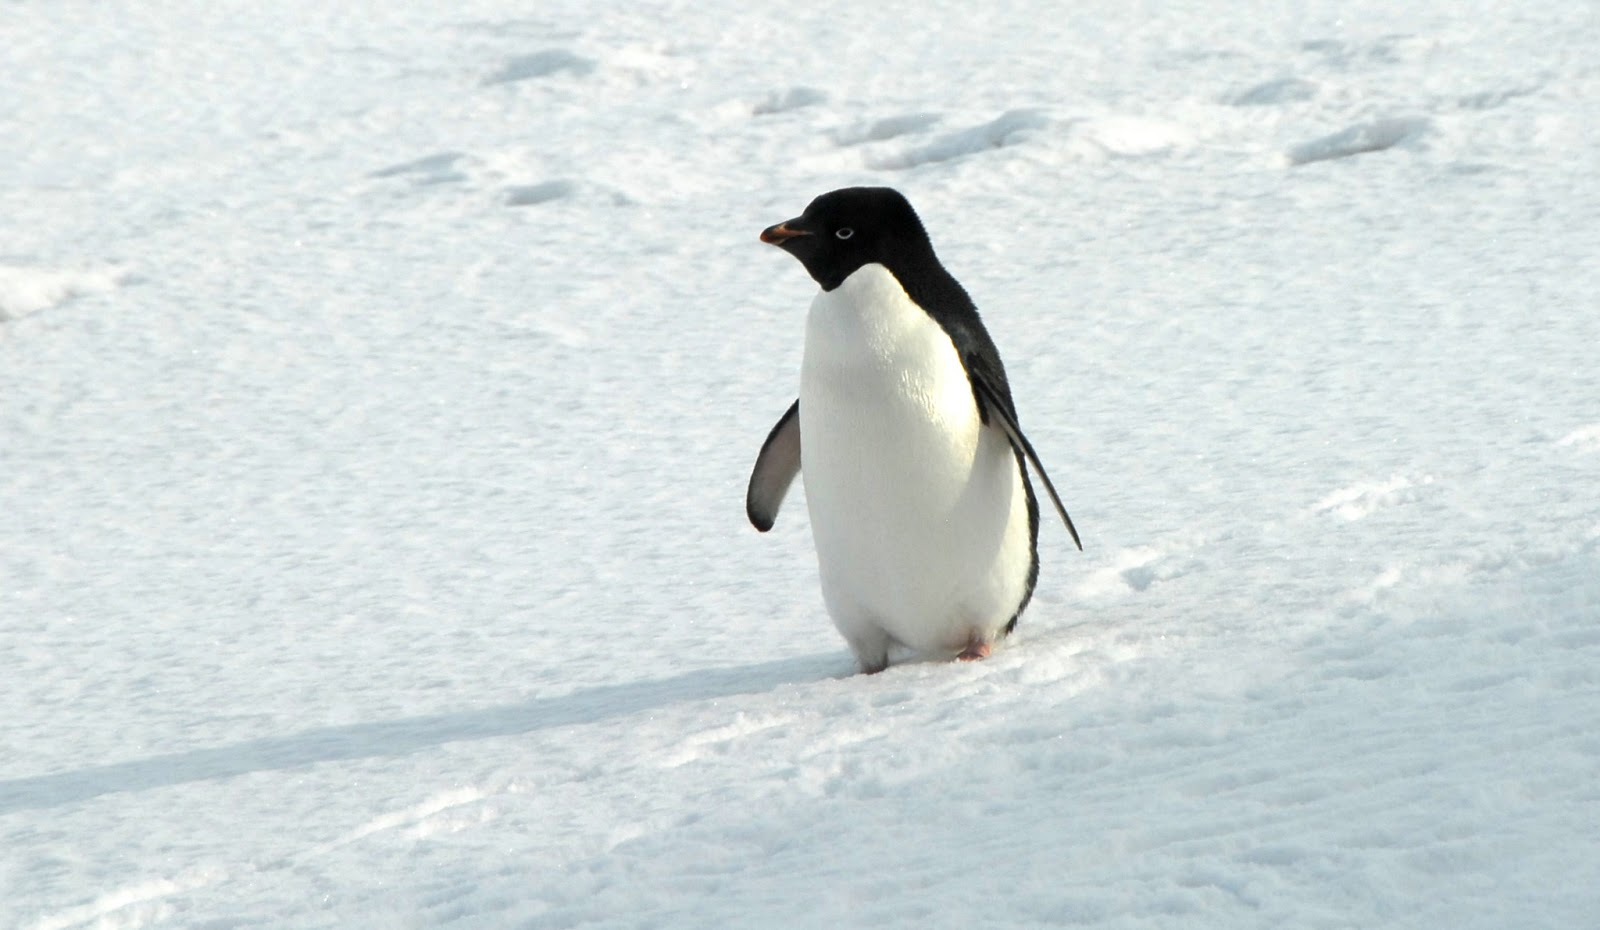 Images of adelie penguins - photo#4